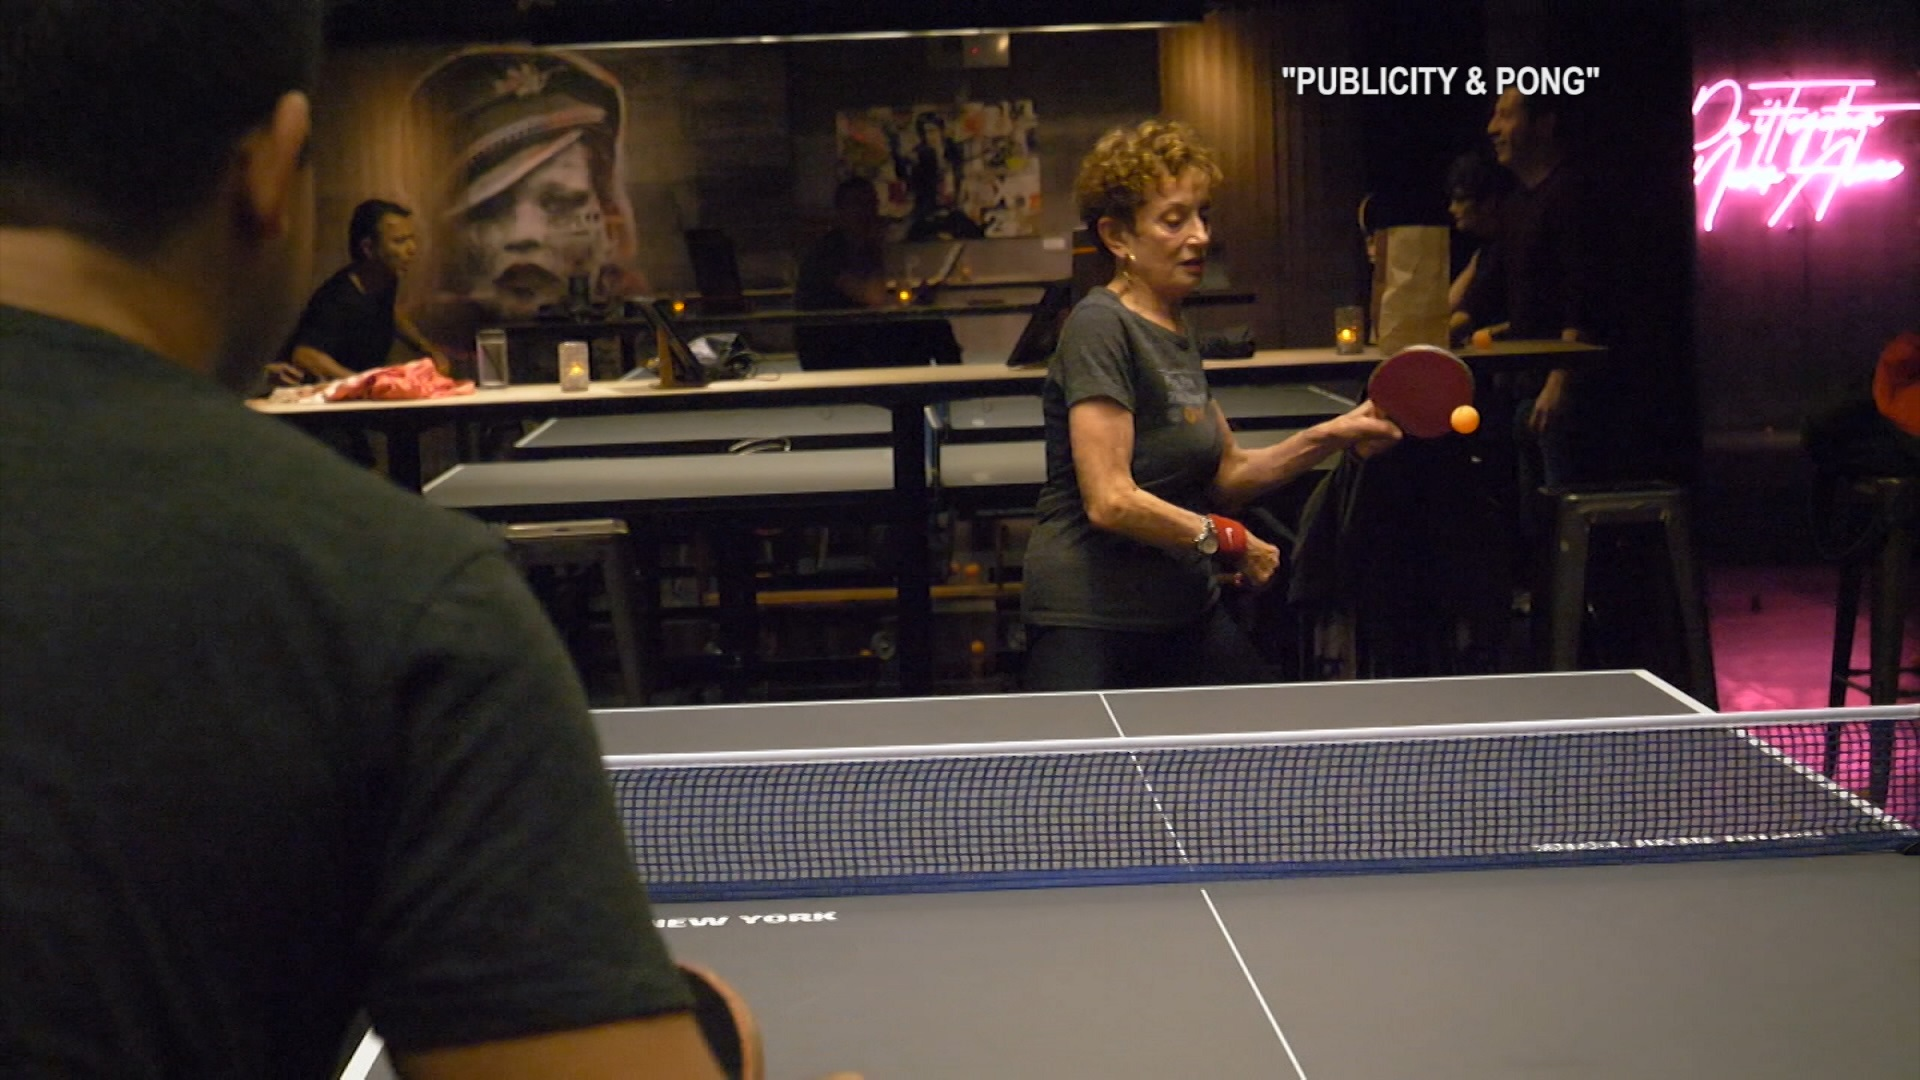 PING-PONG PASSION